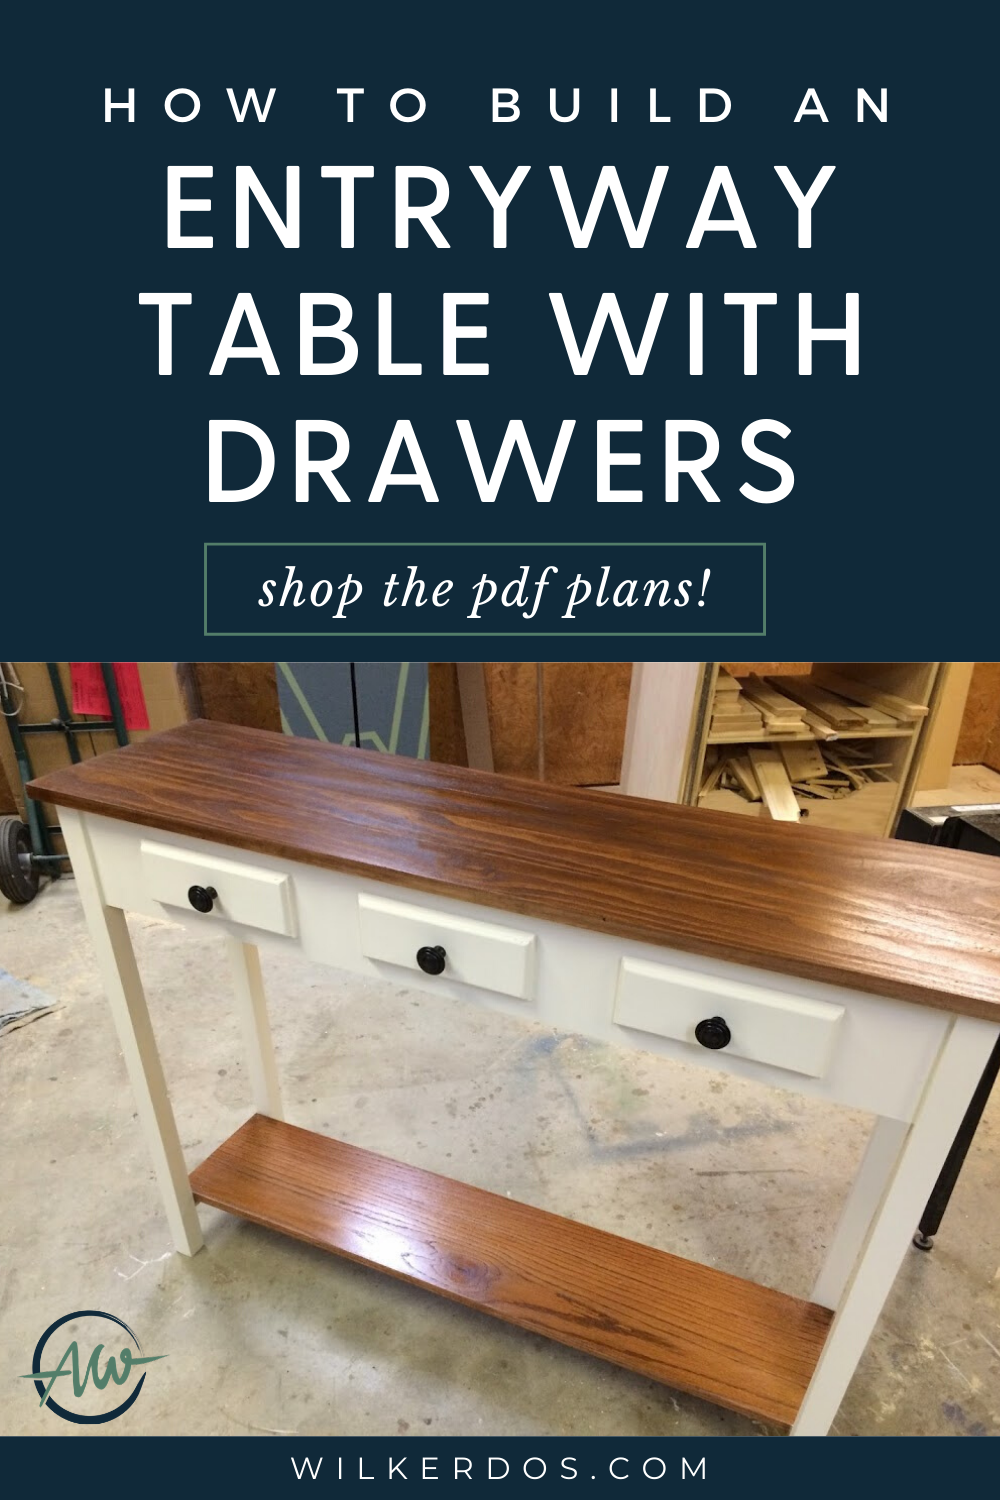 Entryway Table Plans Wilker Do's Simple woodworking